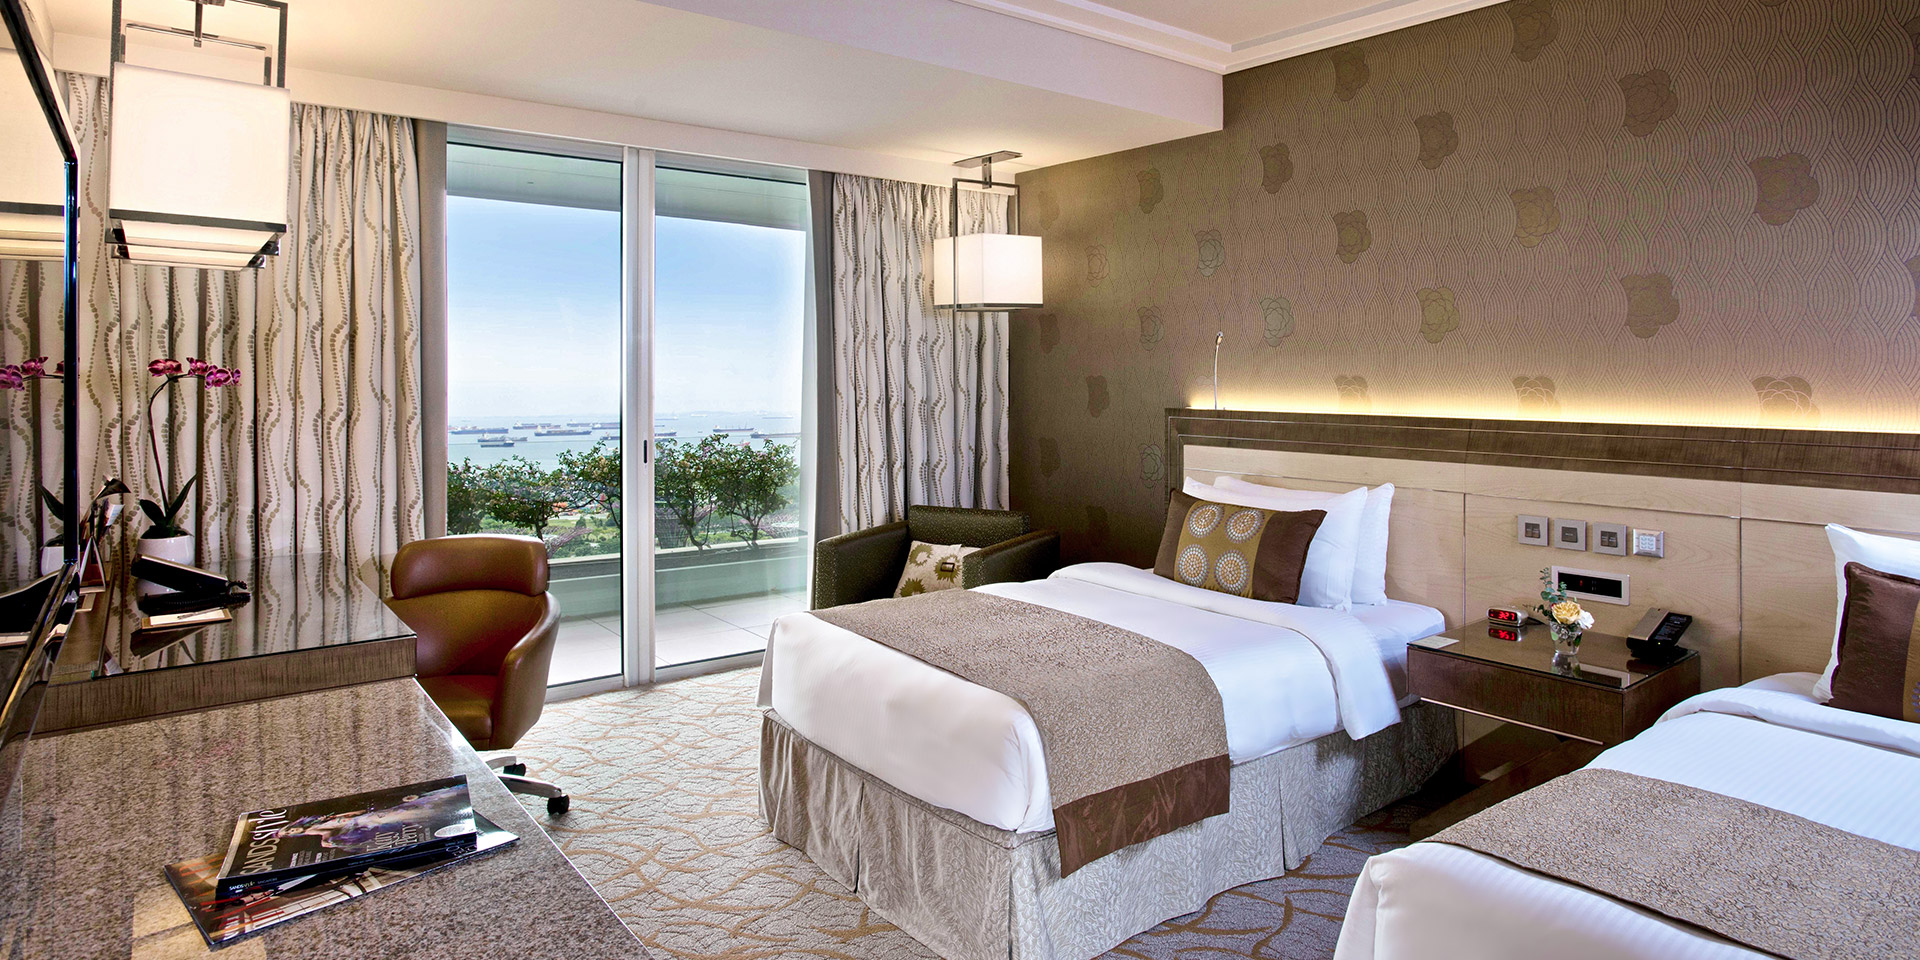 Deluxe Room at Marina Bay Sands with Twin Beds and Garden View